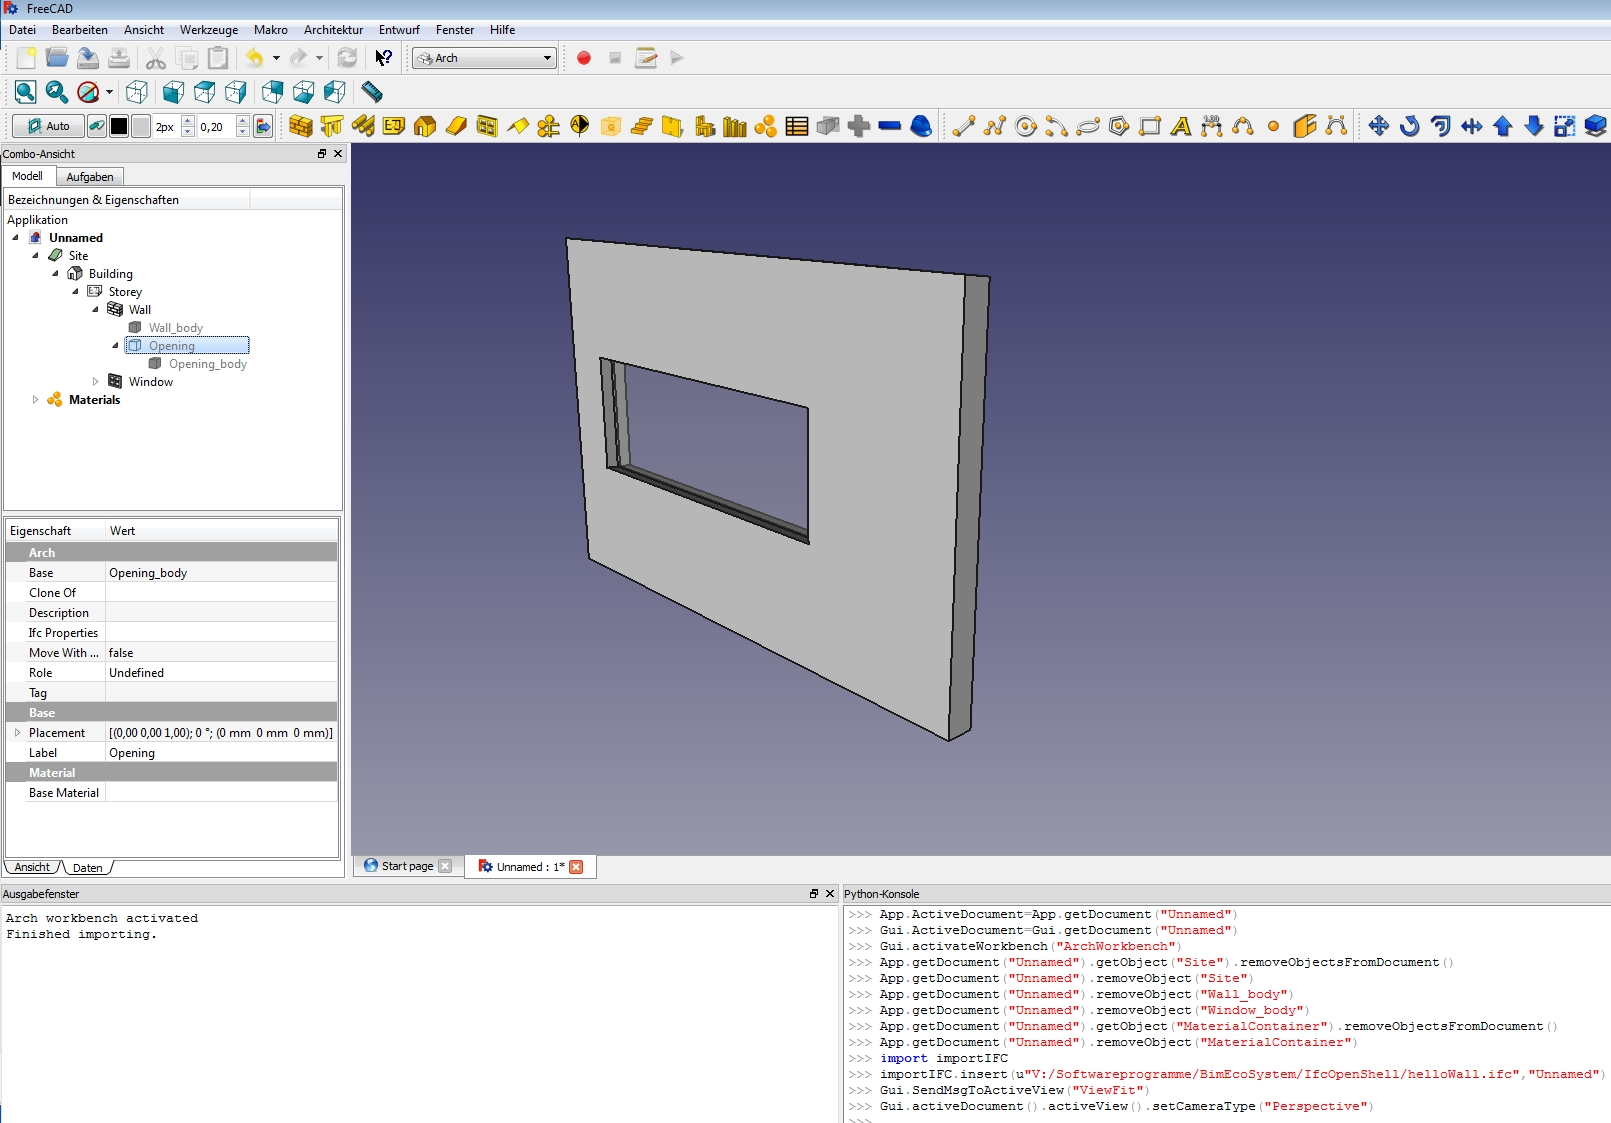 FreeCAD_helloWall_screenshot_2.jpg